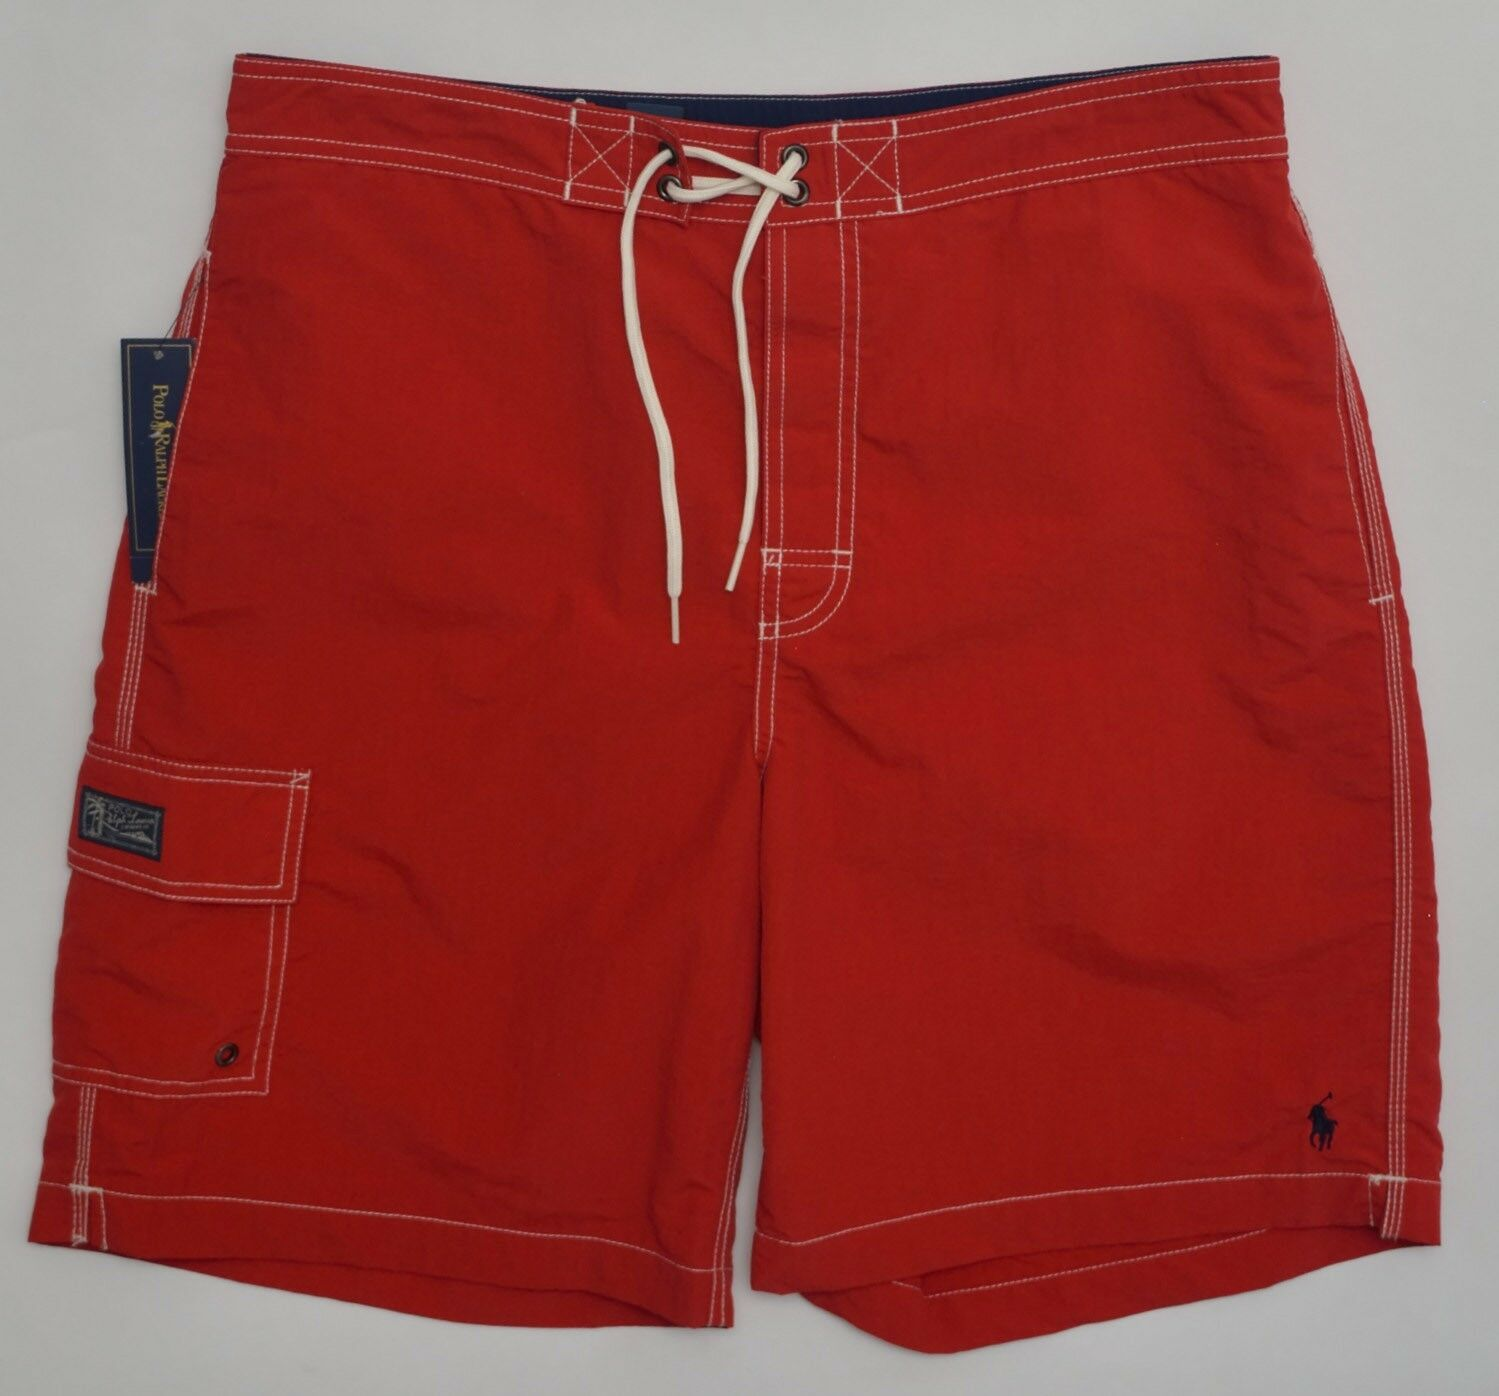 Men's POLO RALPH LAUREN Red Swimsuit Trunks L Large NWT NEW Nice  4177635